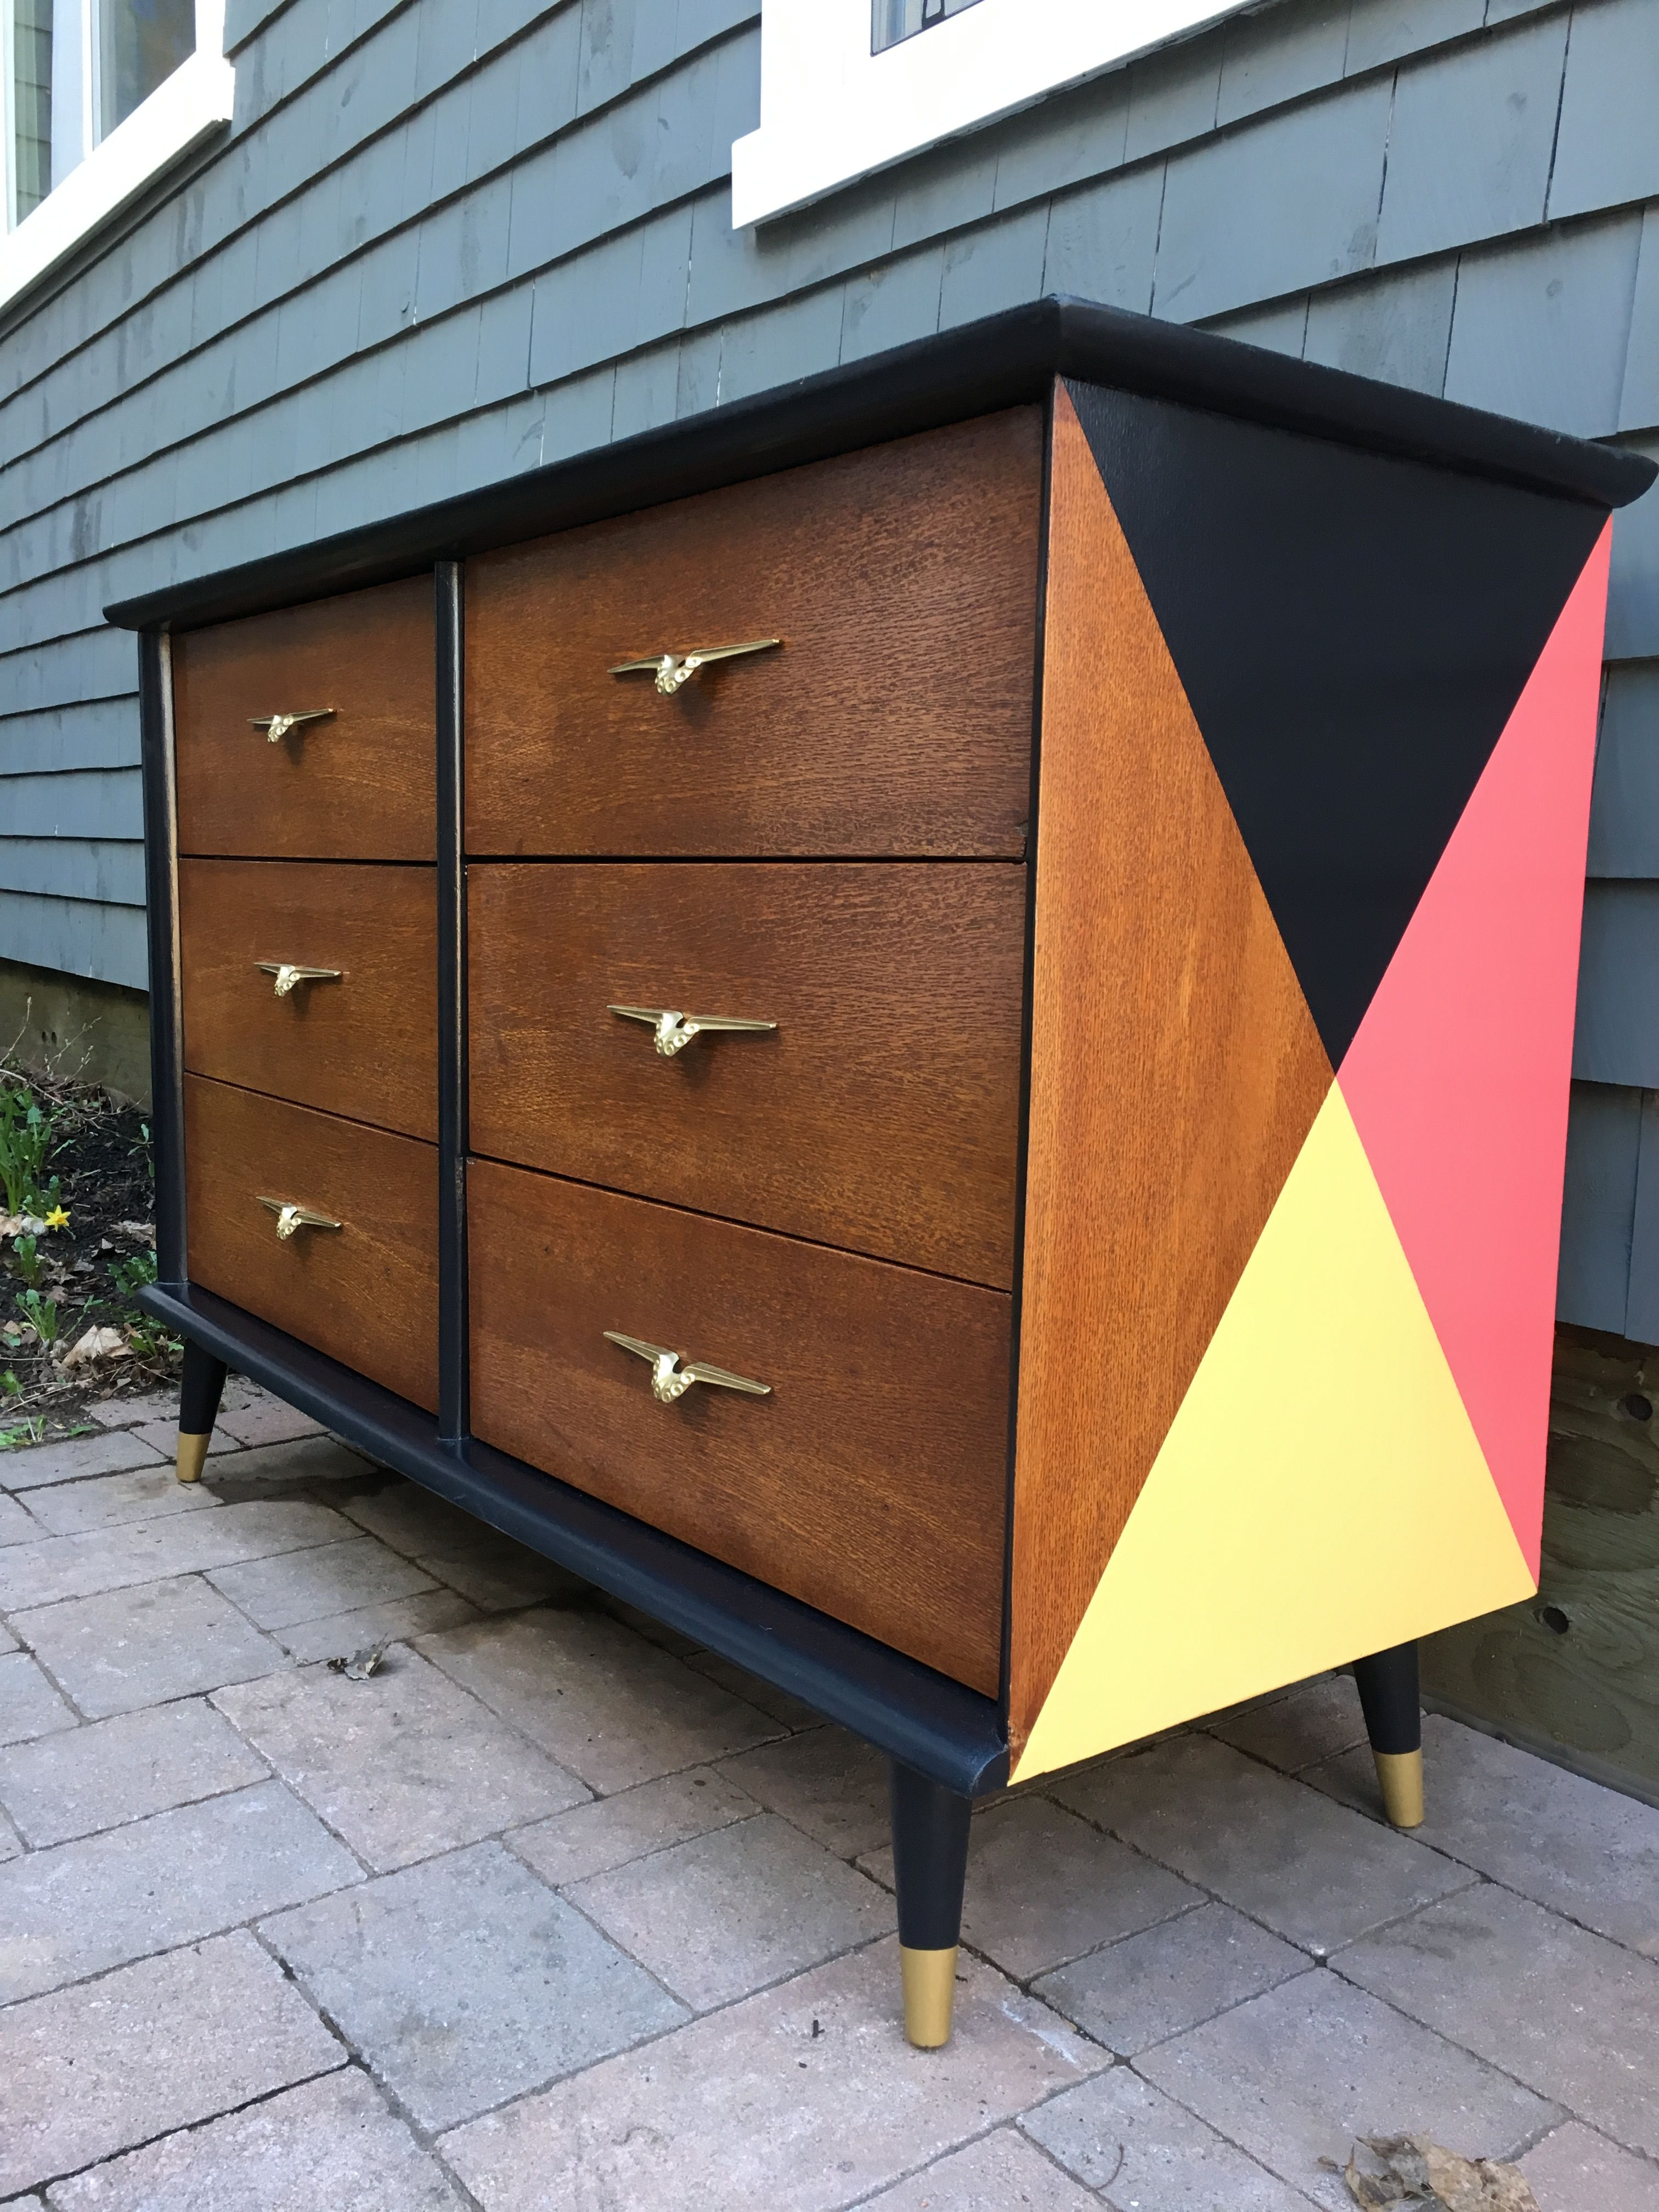 Refinished This Mid Century Modern Dresser With General Finished Lamp Black Coastal Blue Coral Crush And Somerset Yellow Decor Home Decor Furniture Diy